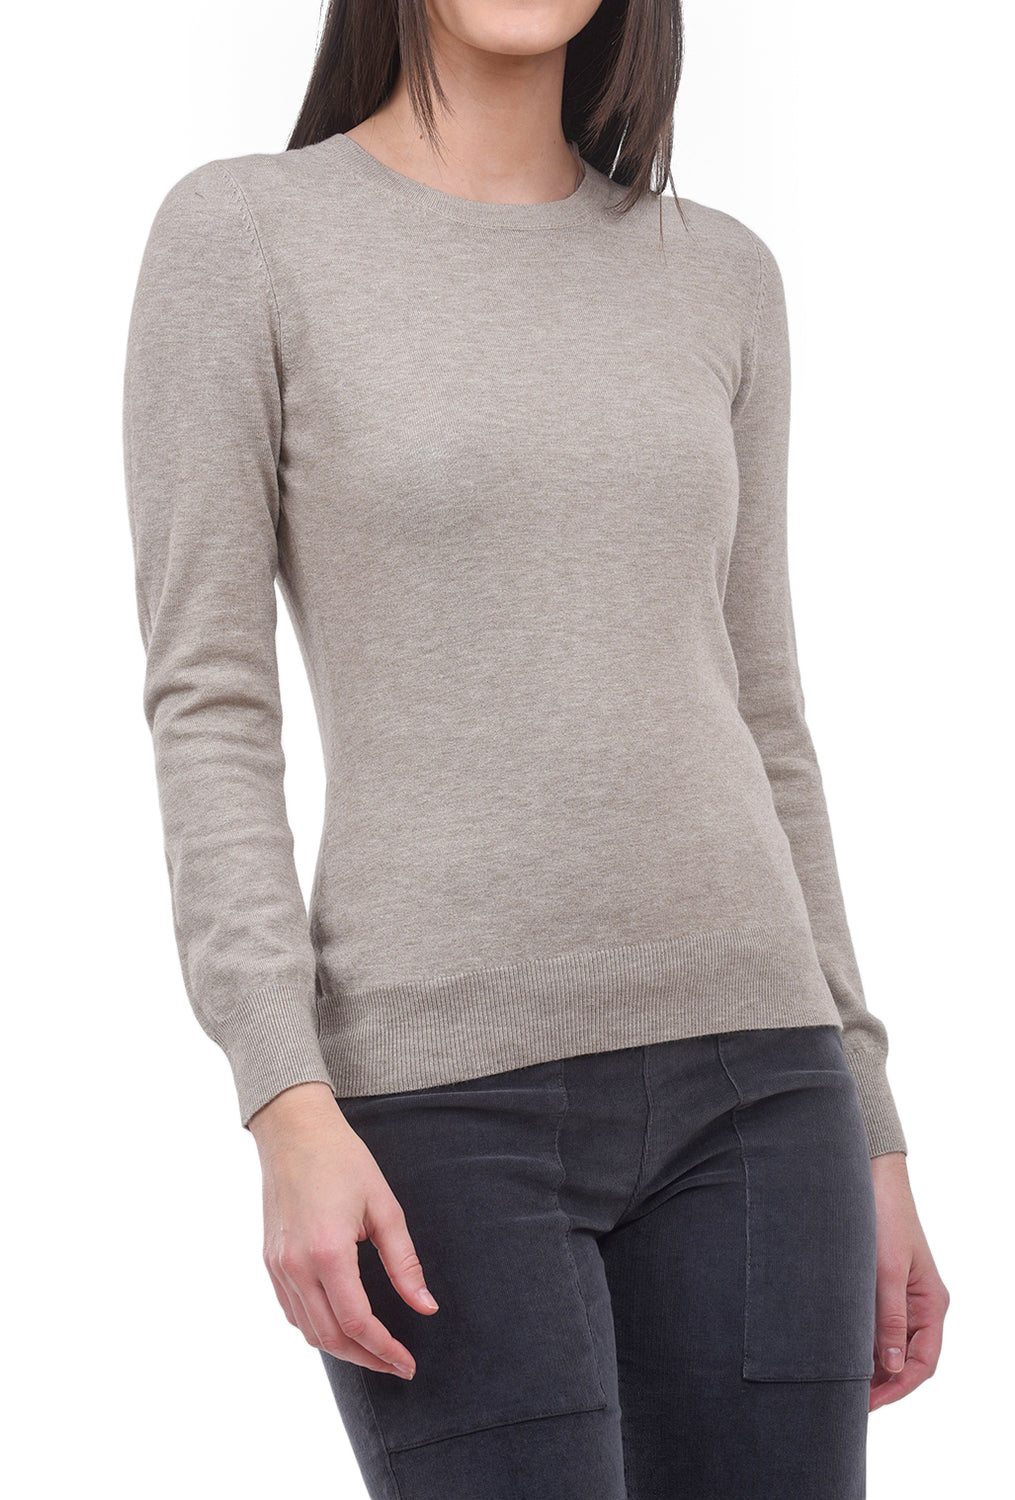 Sisters Spare Crew Sweater, Taupe